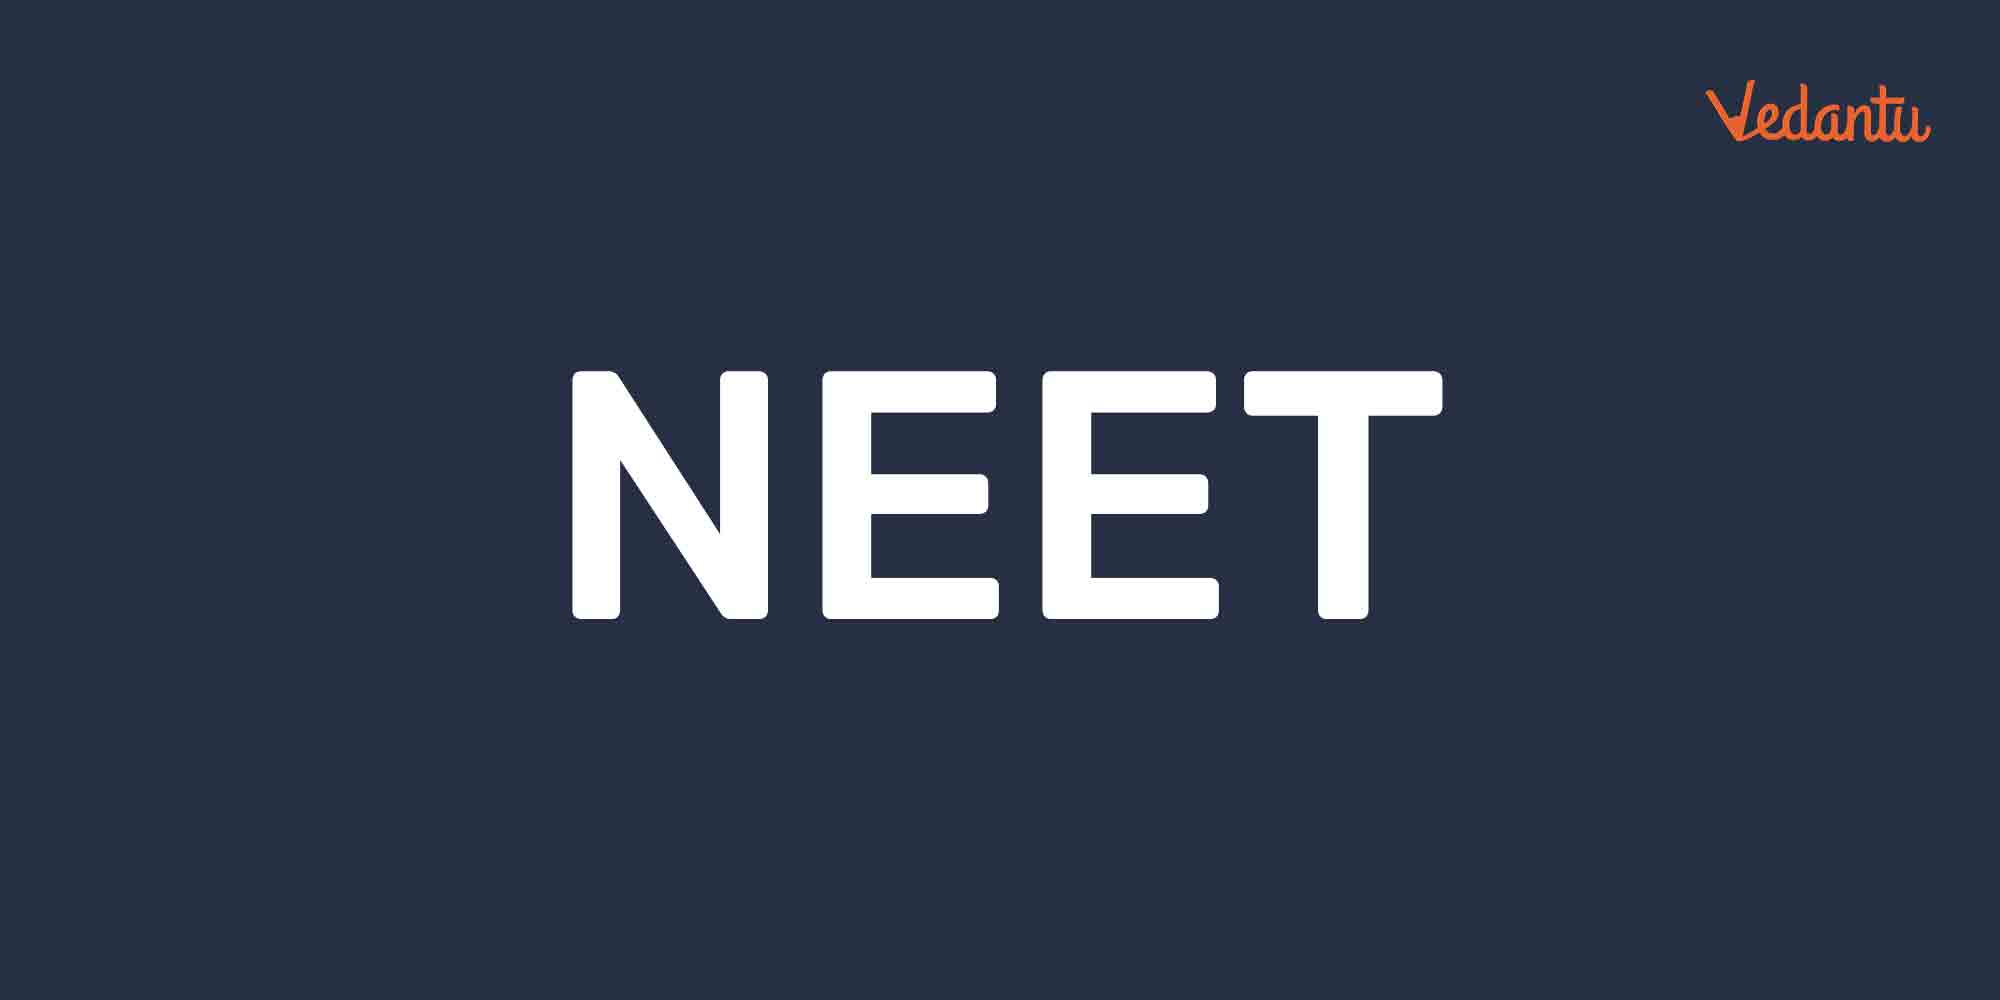 How to Prepare for NEET Exam in 3 Months